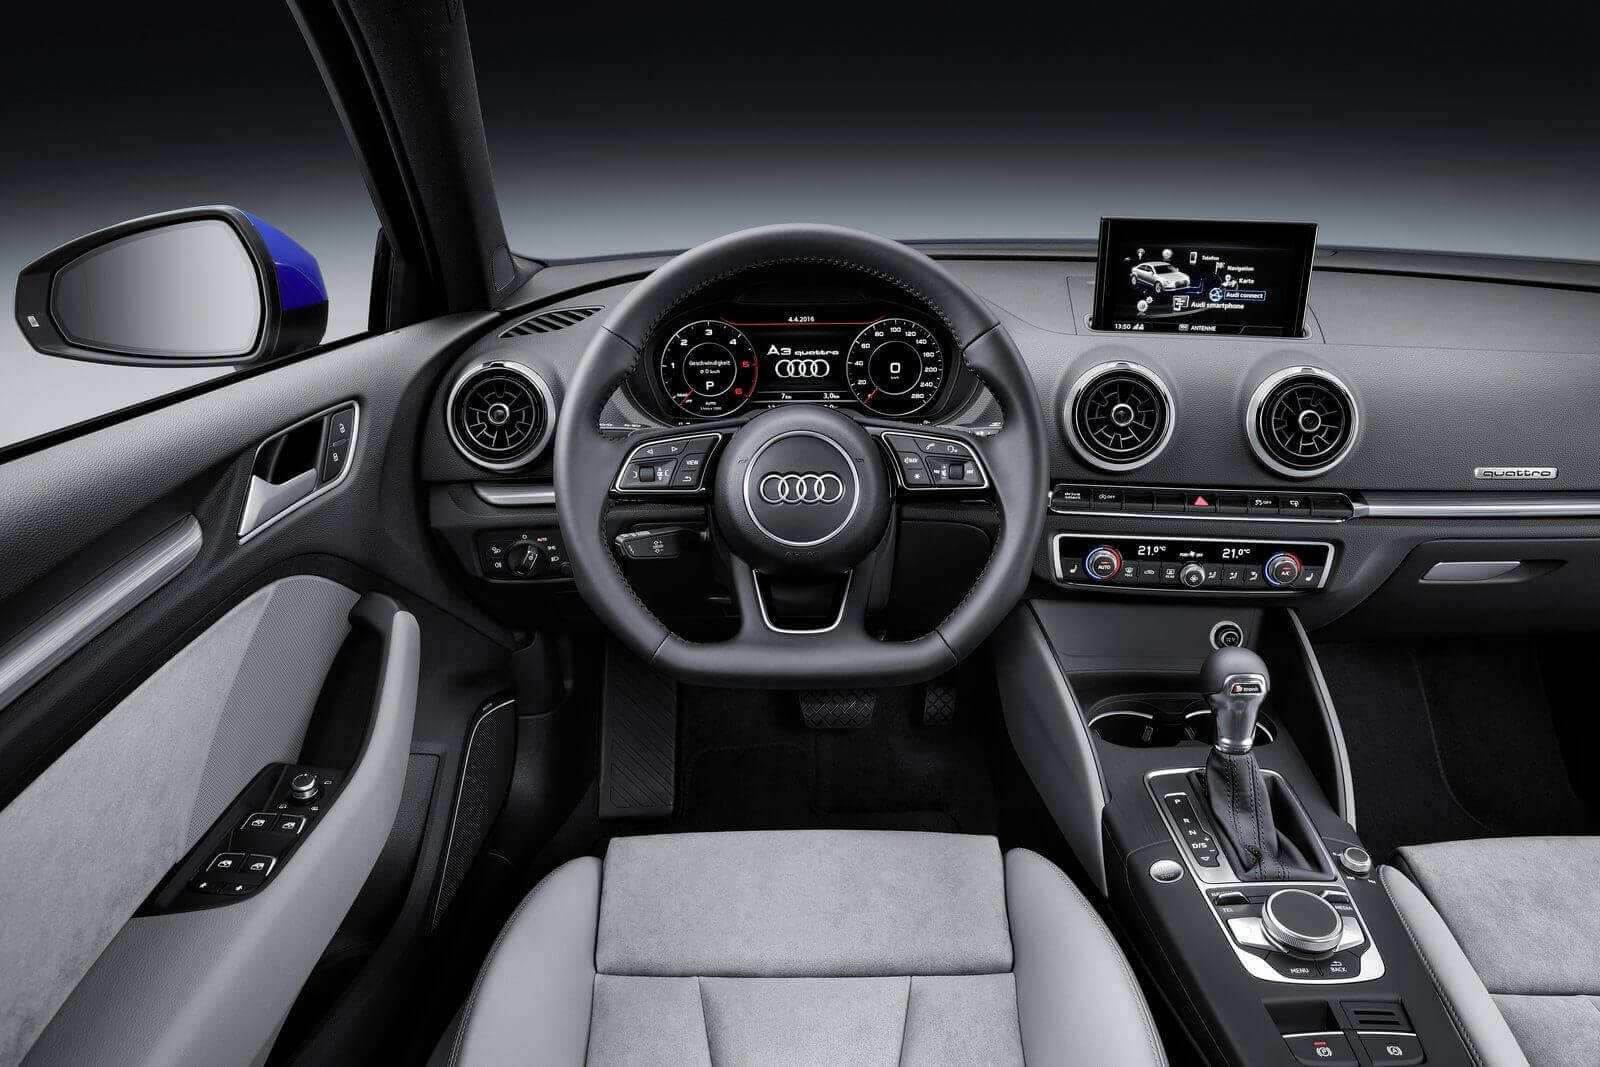 25 New The Audi A3 Coupe 2019 Review Specs And Release Date Interior with The Audi A3 Coupe 2019 Review Specs And Release Date